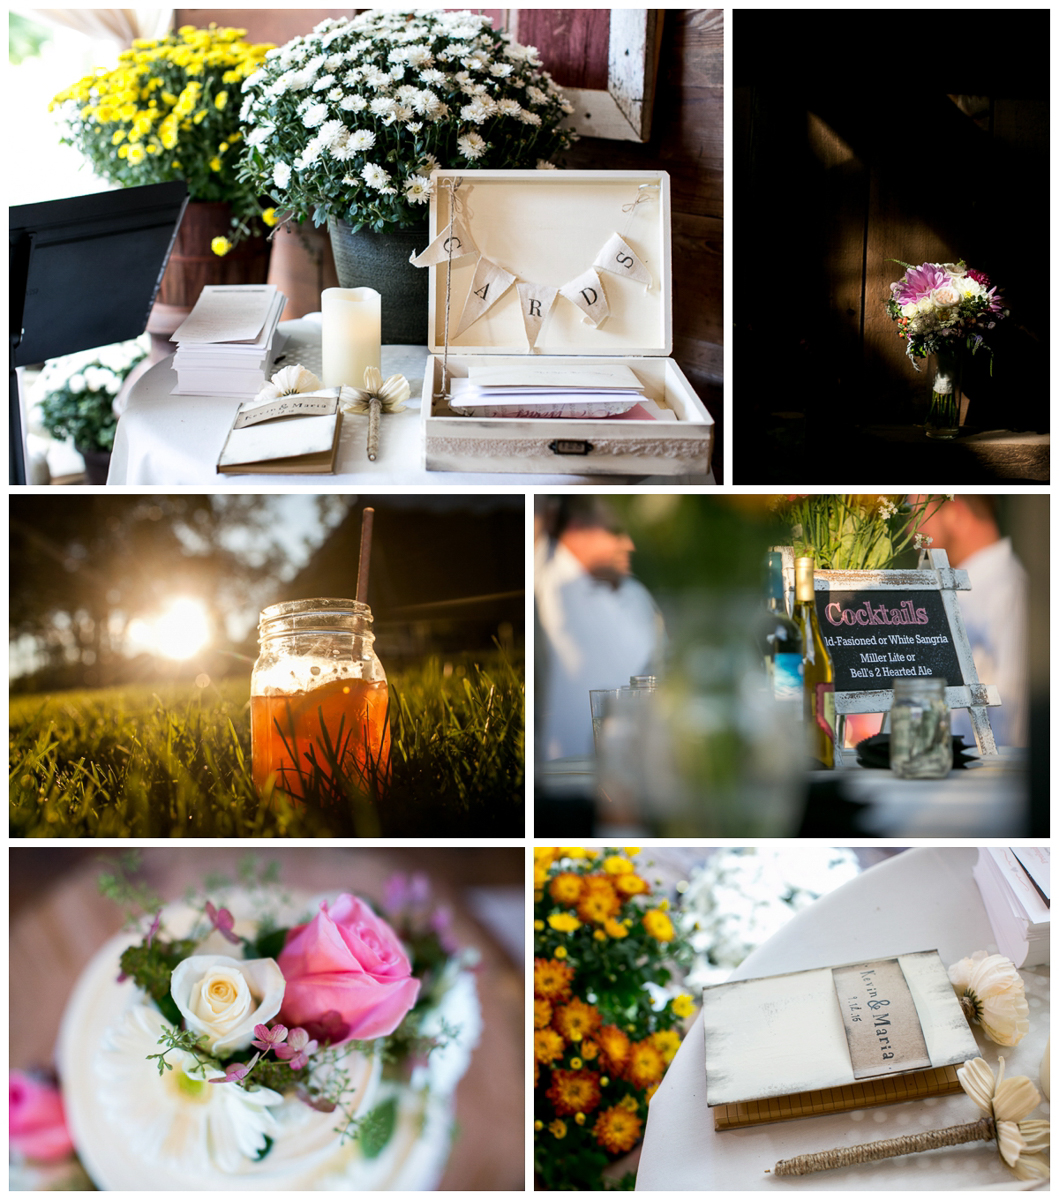 backyard wedding DIY details